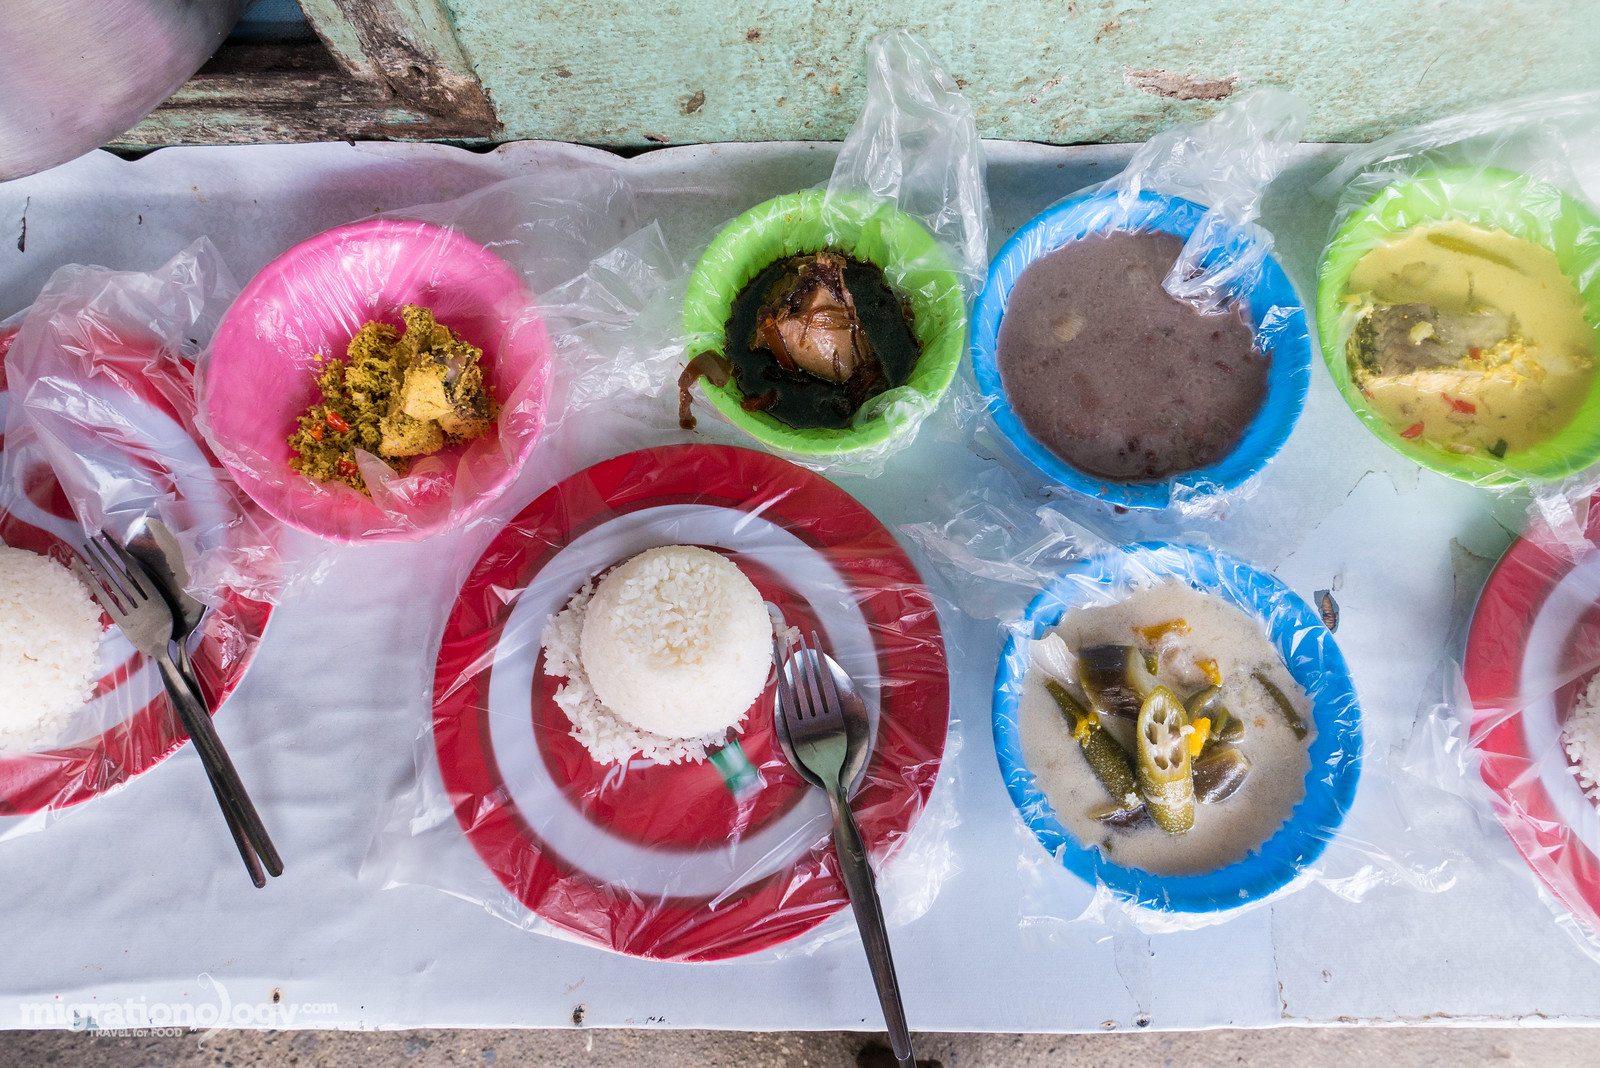 Filipino street food